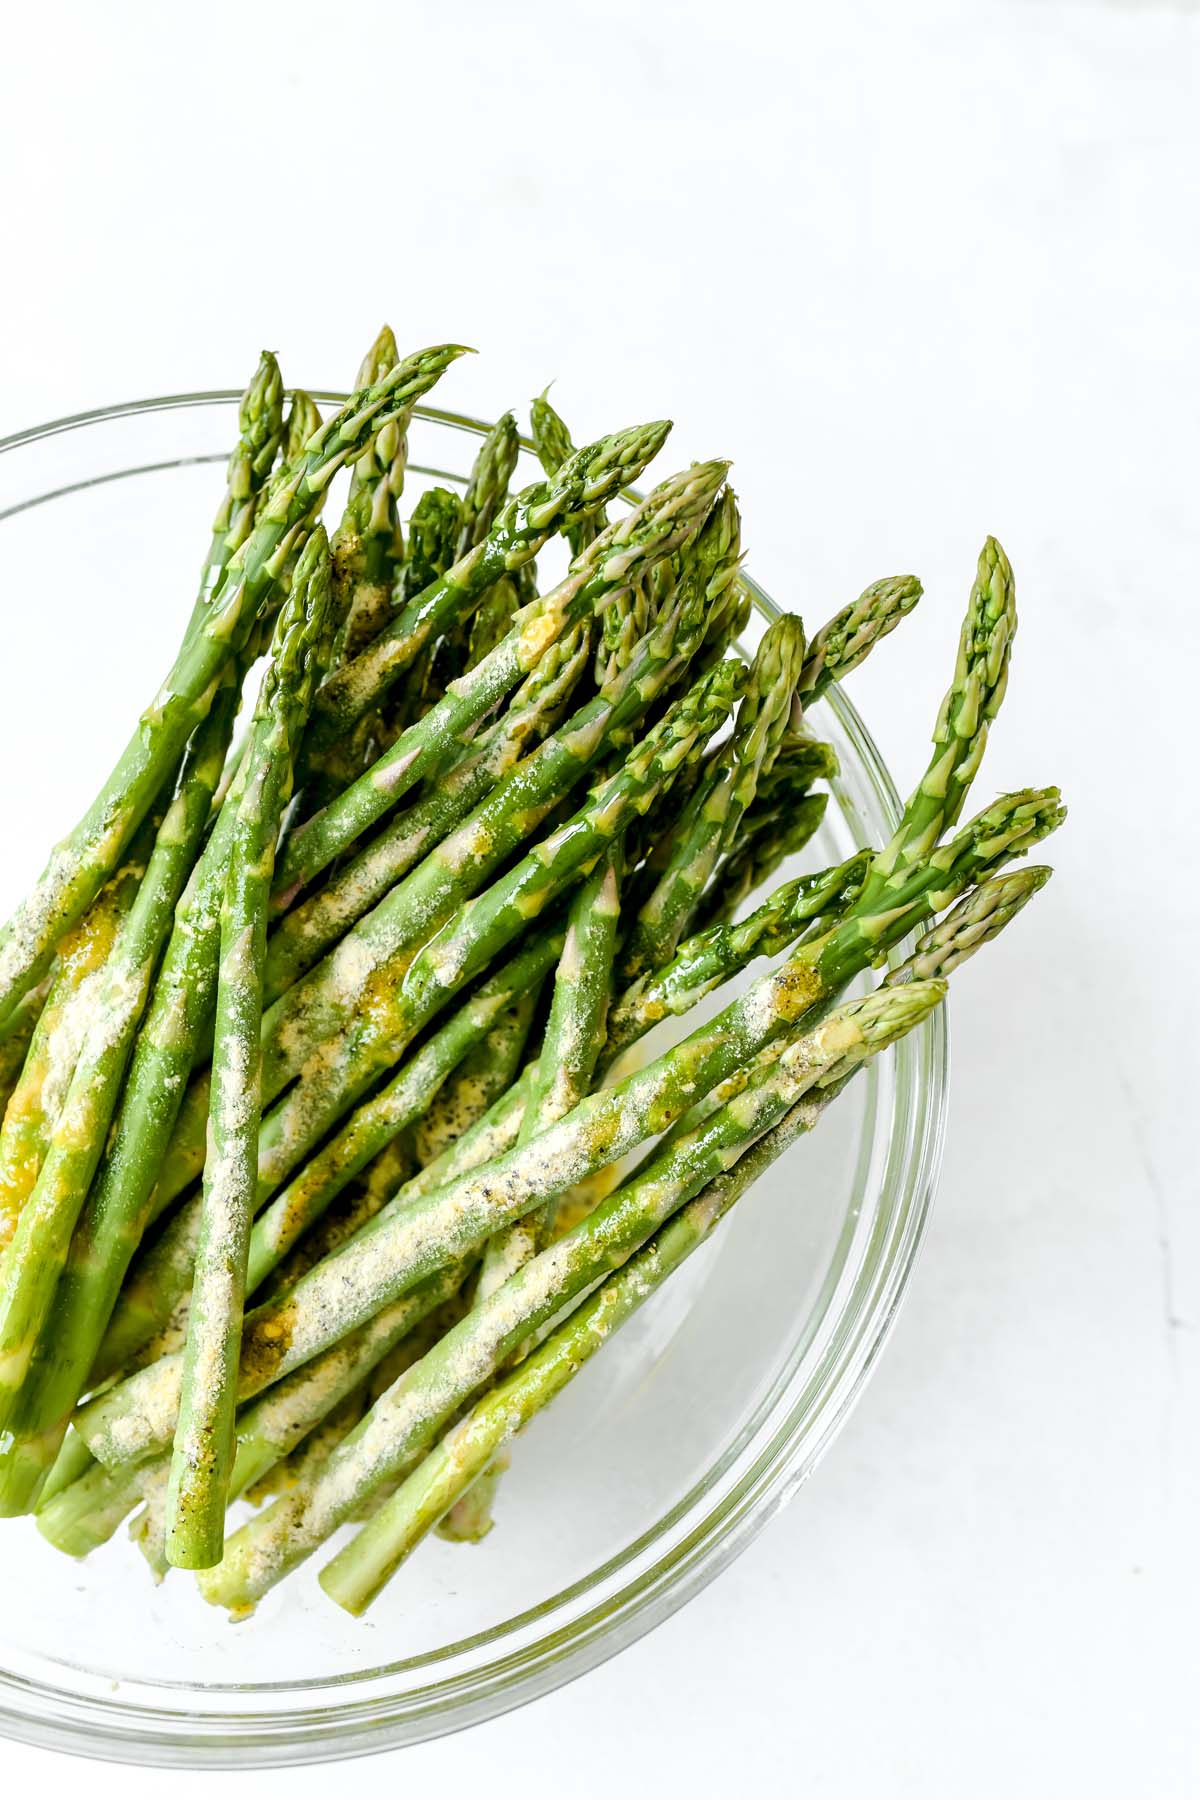 Spiced and oiled asparagus in a glass bowl.